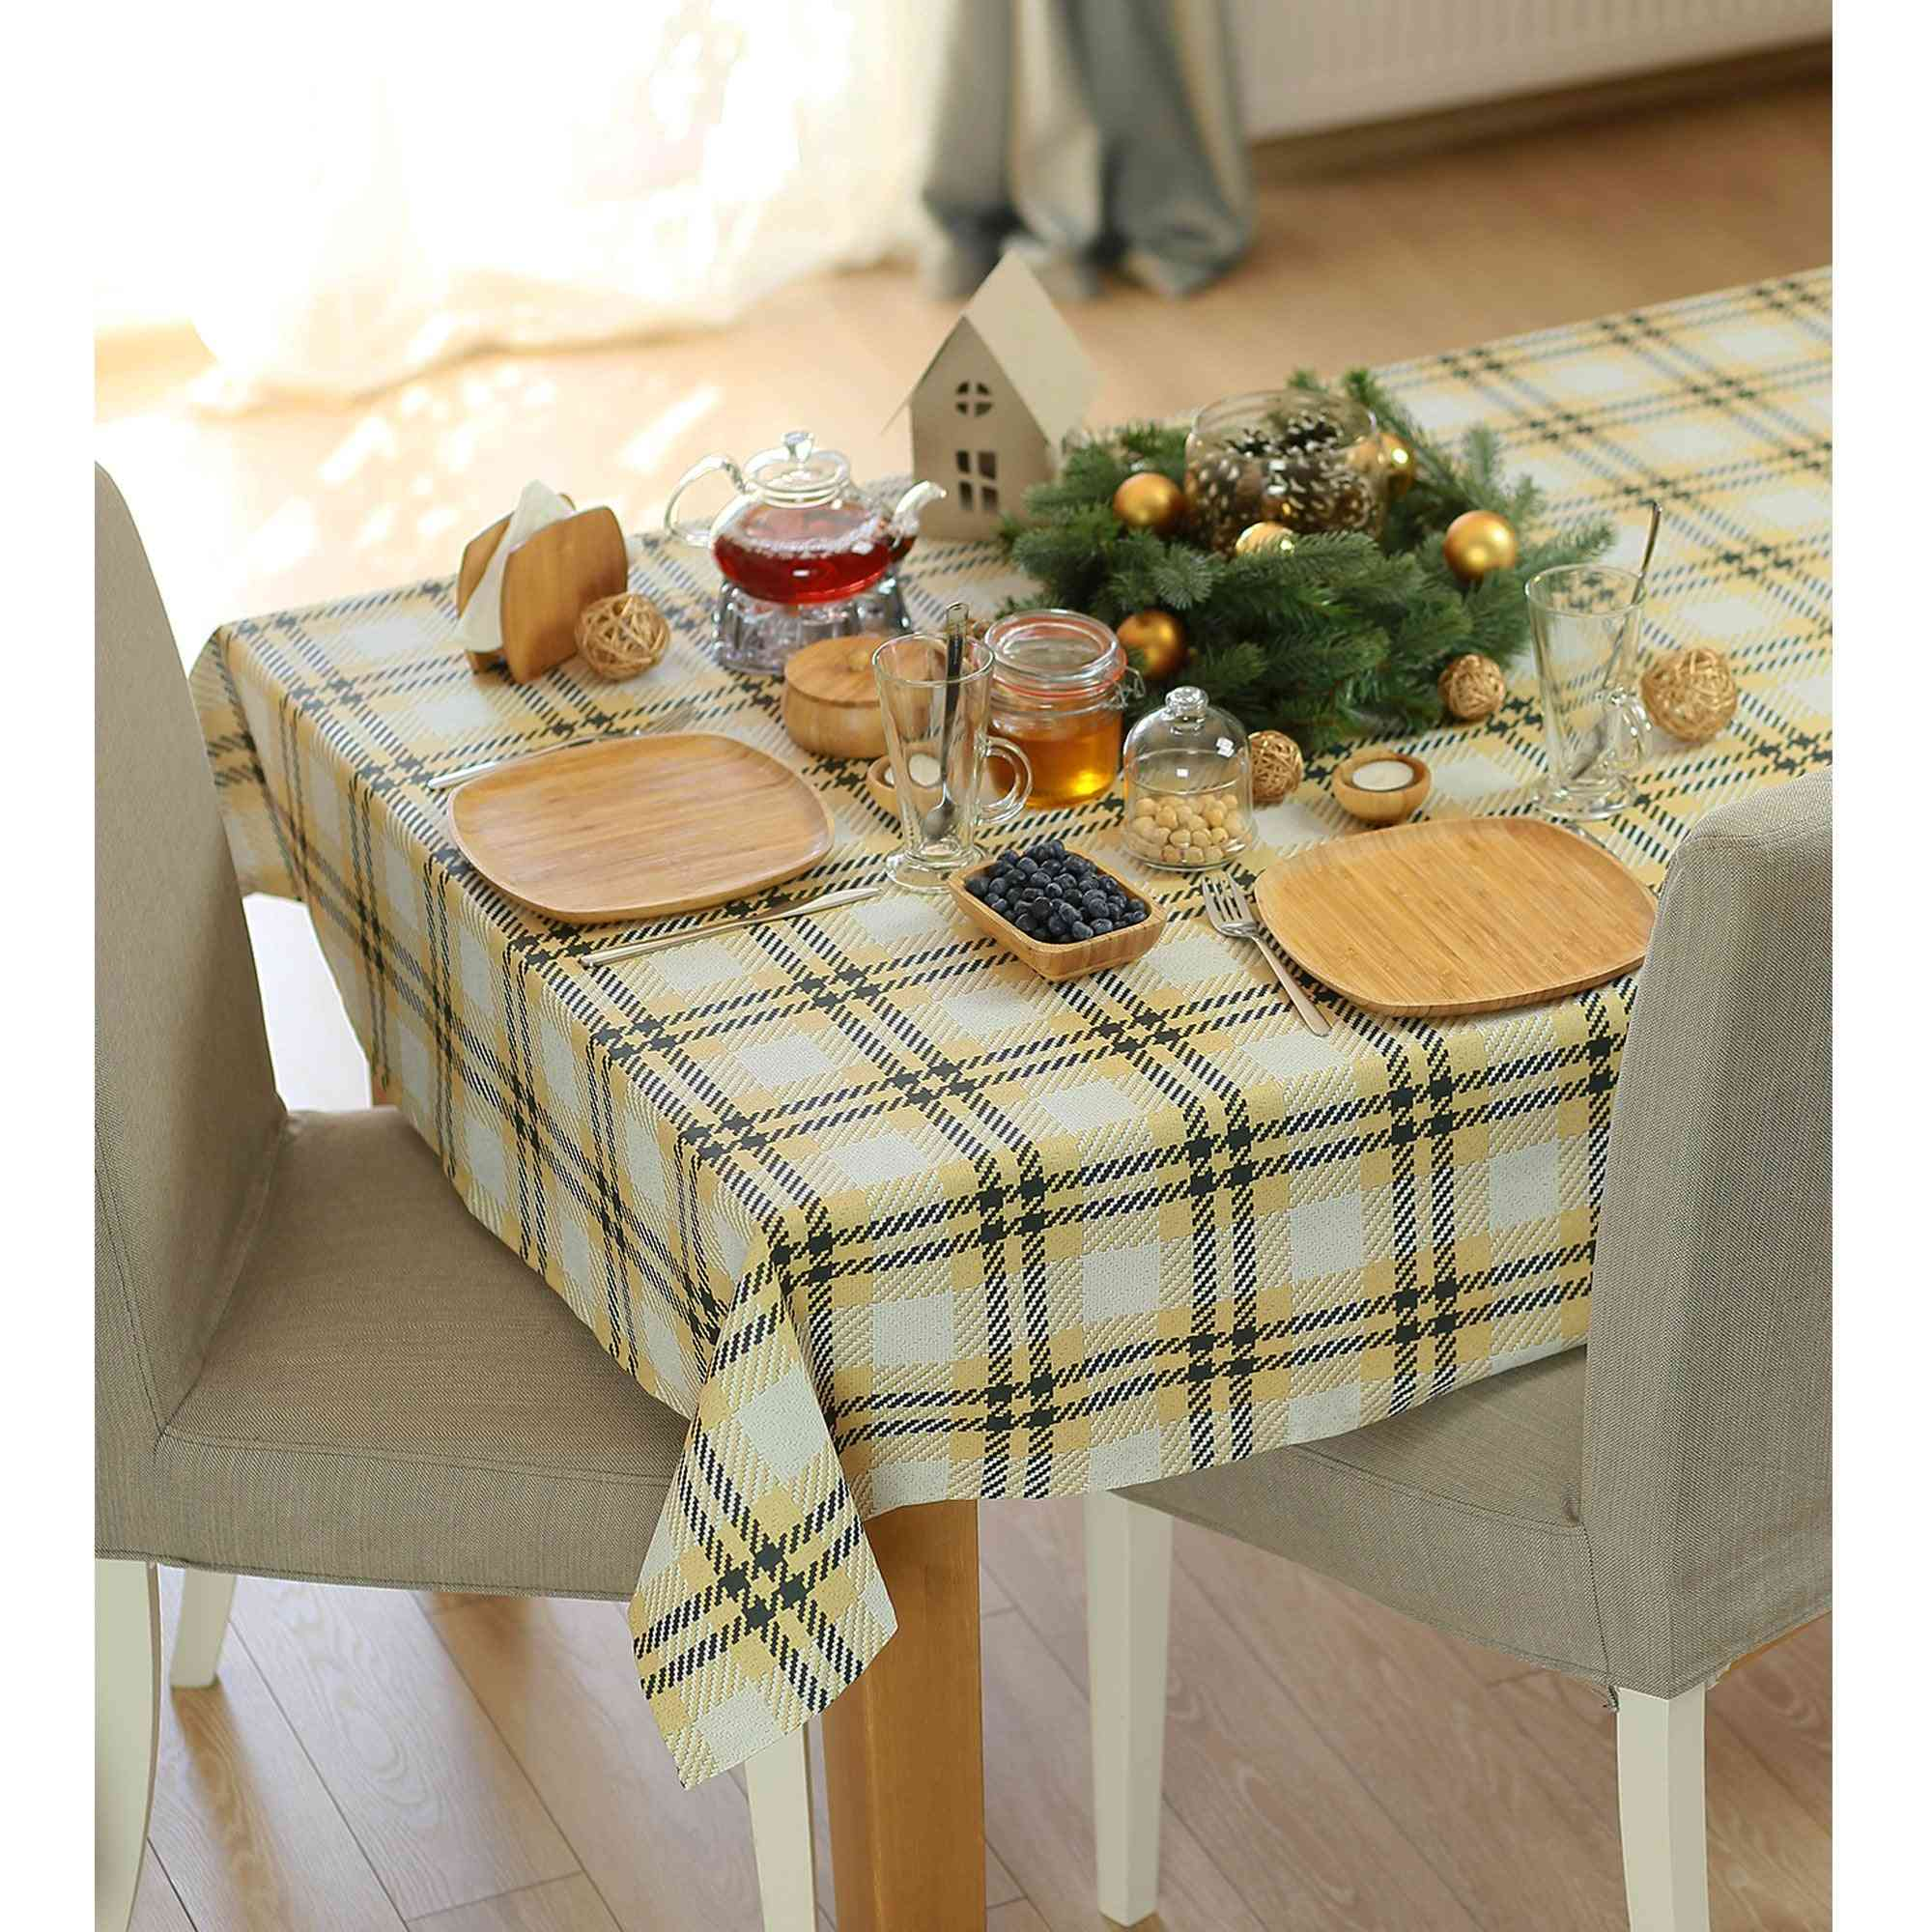 Merry Christmas Square Printed Decorative Tablecloth